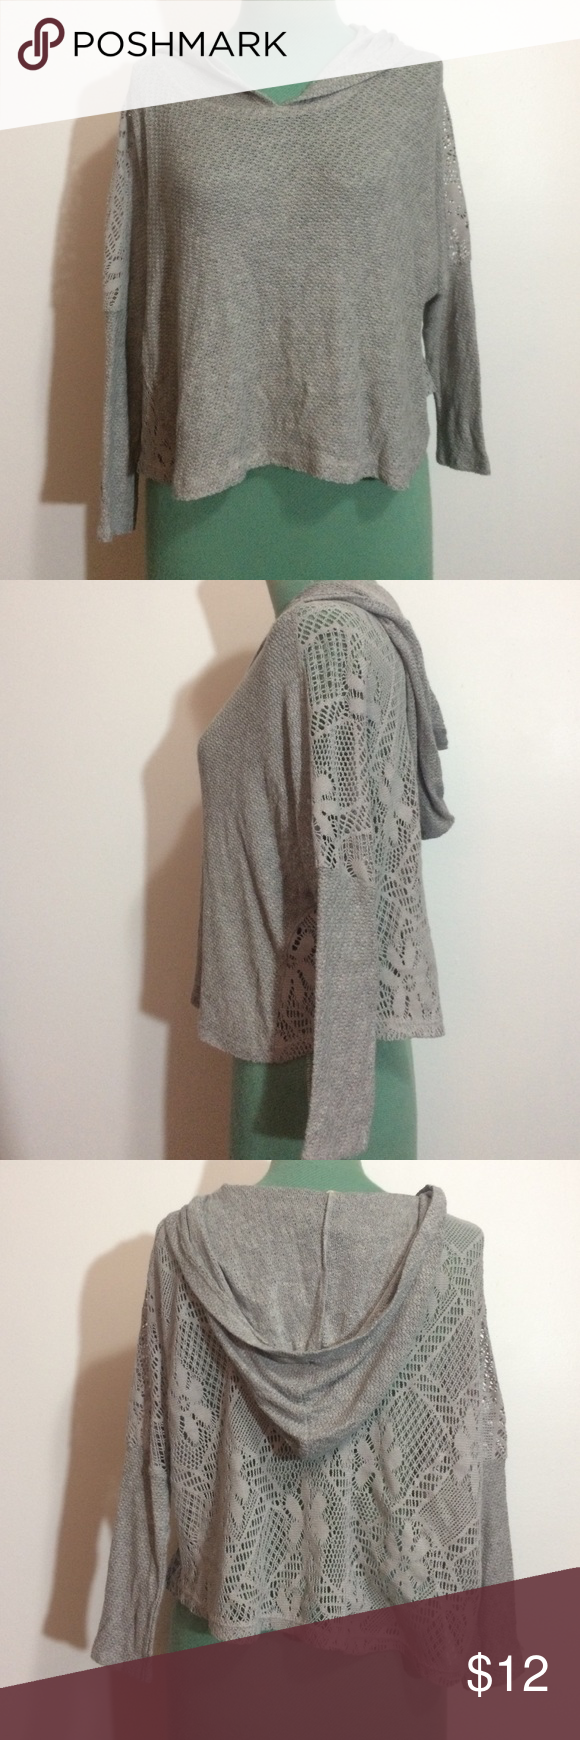 Hollister Oversized Cropped Sweater Hooded gray knit sweater from ...